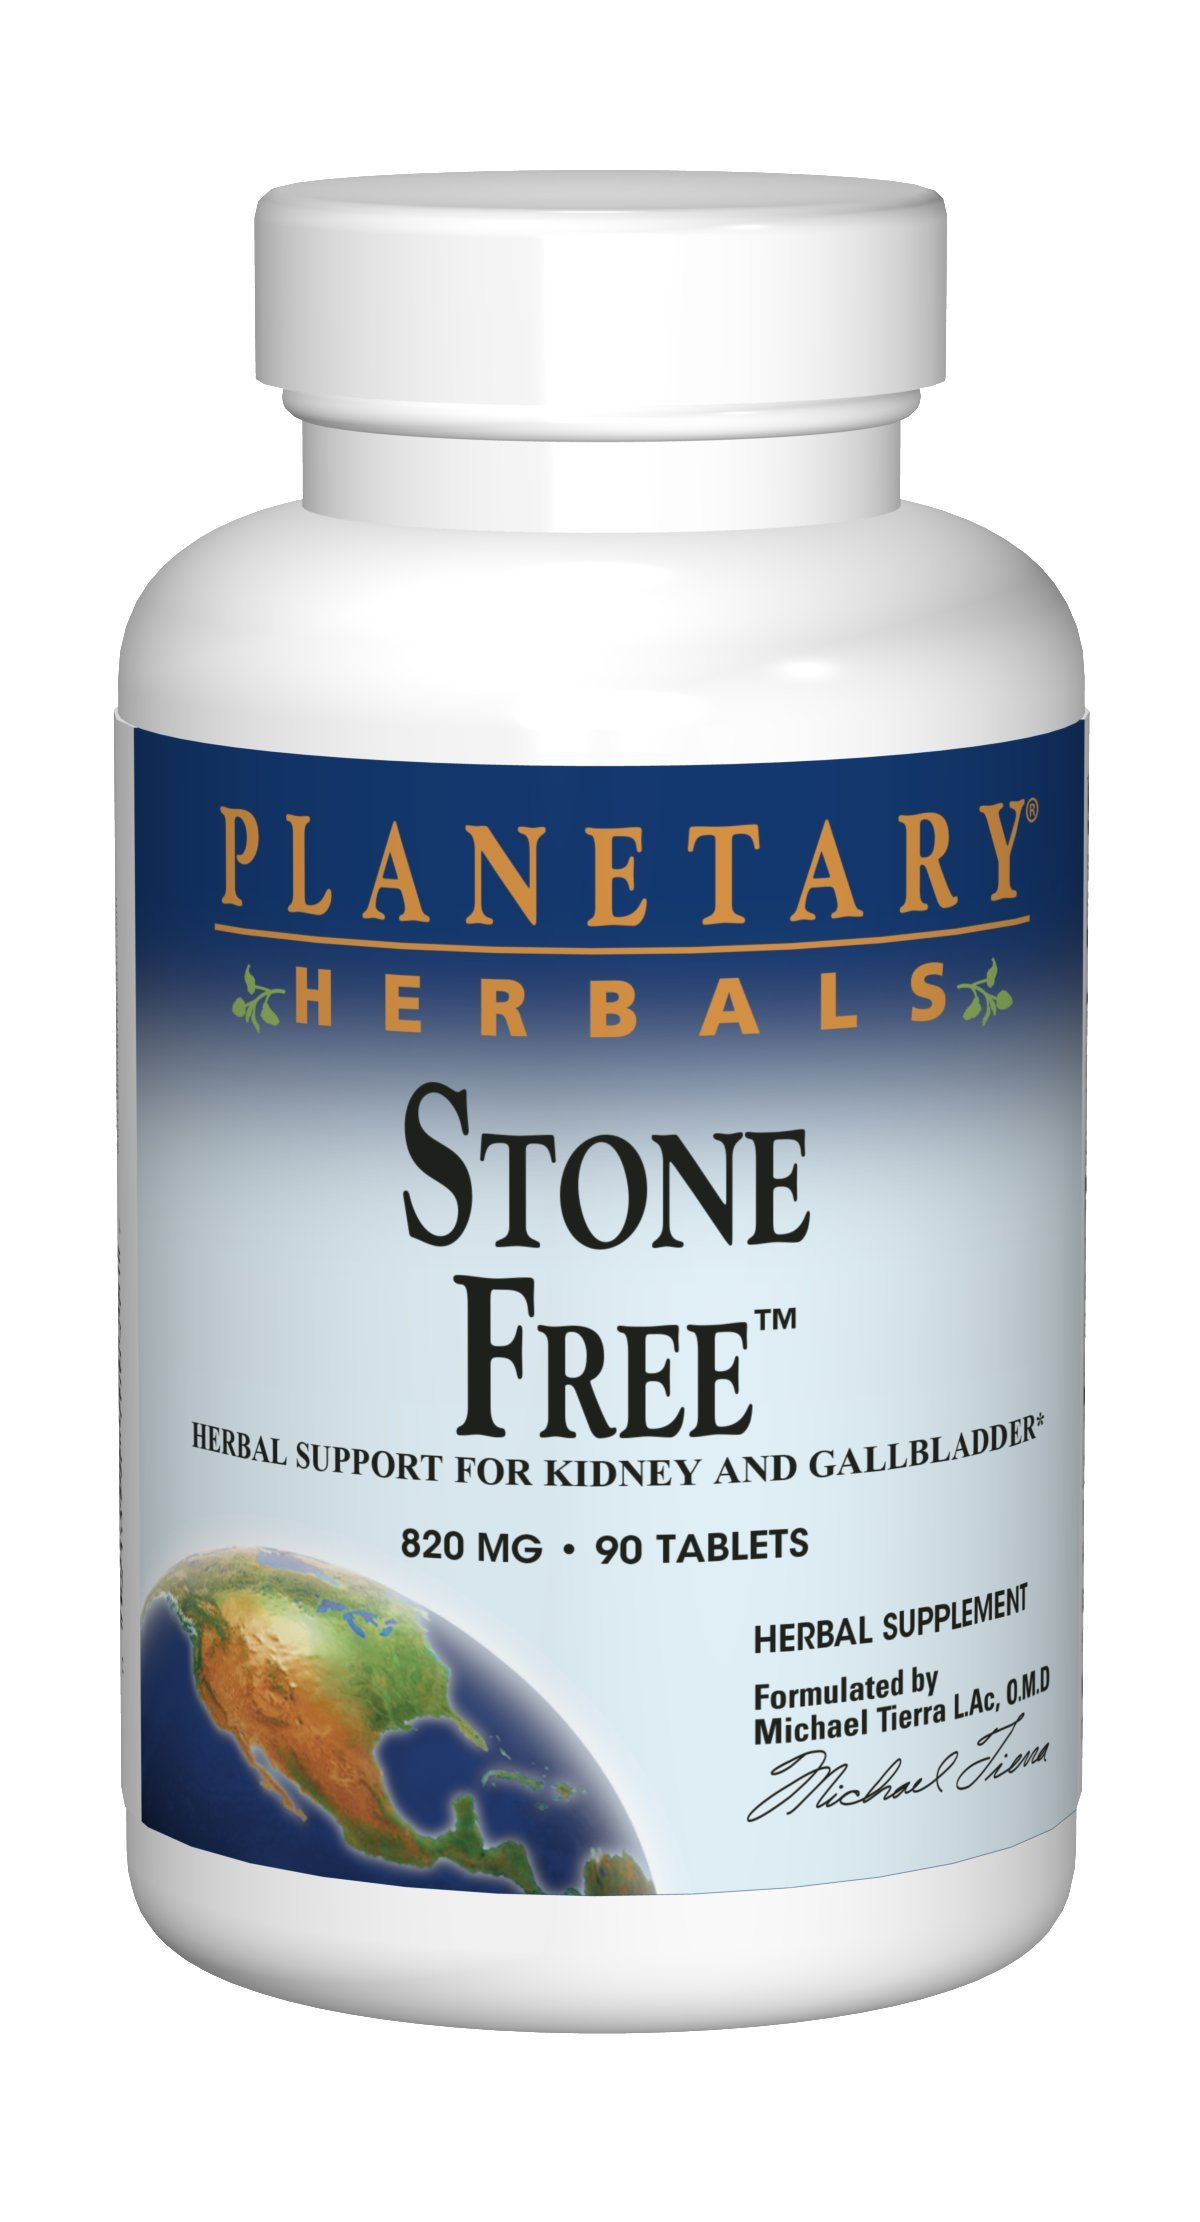 Planetary Herbals Stone Free Tablets, 90 Count